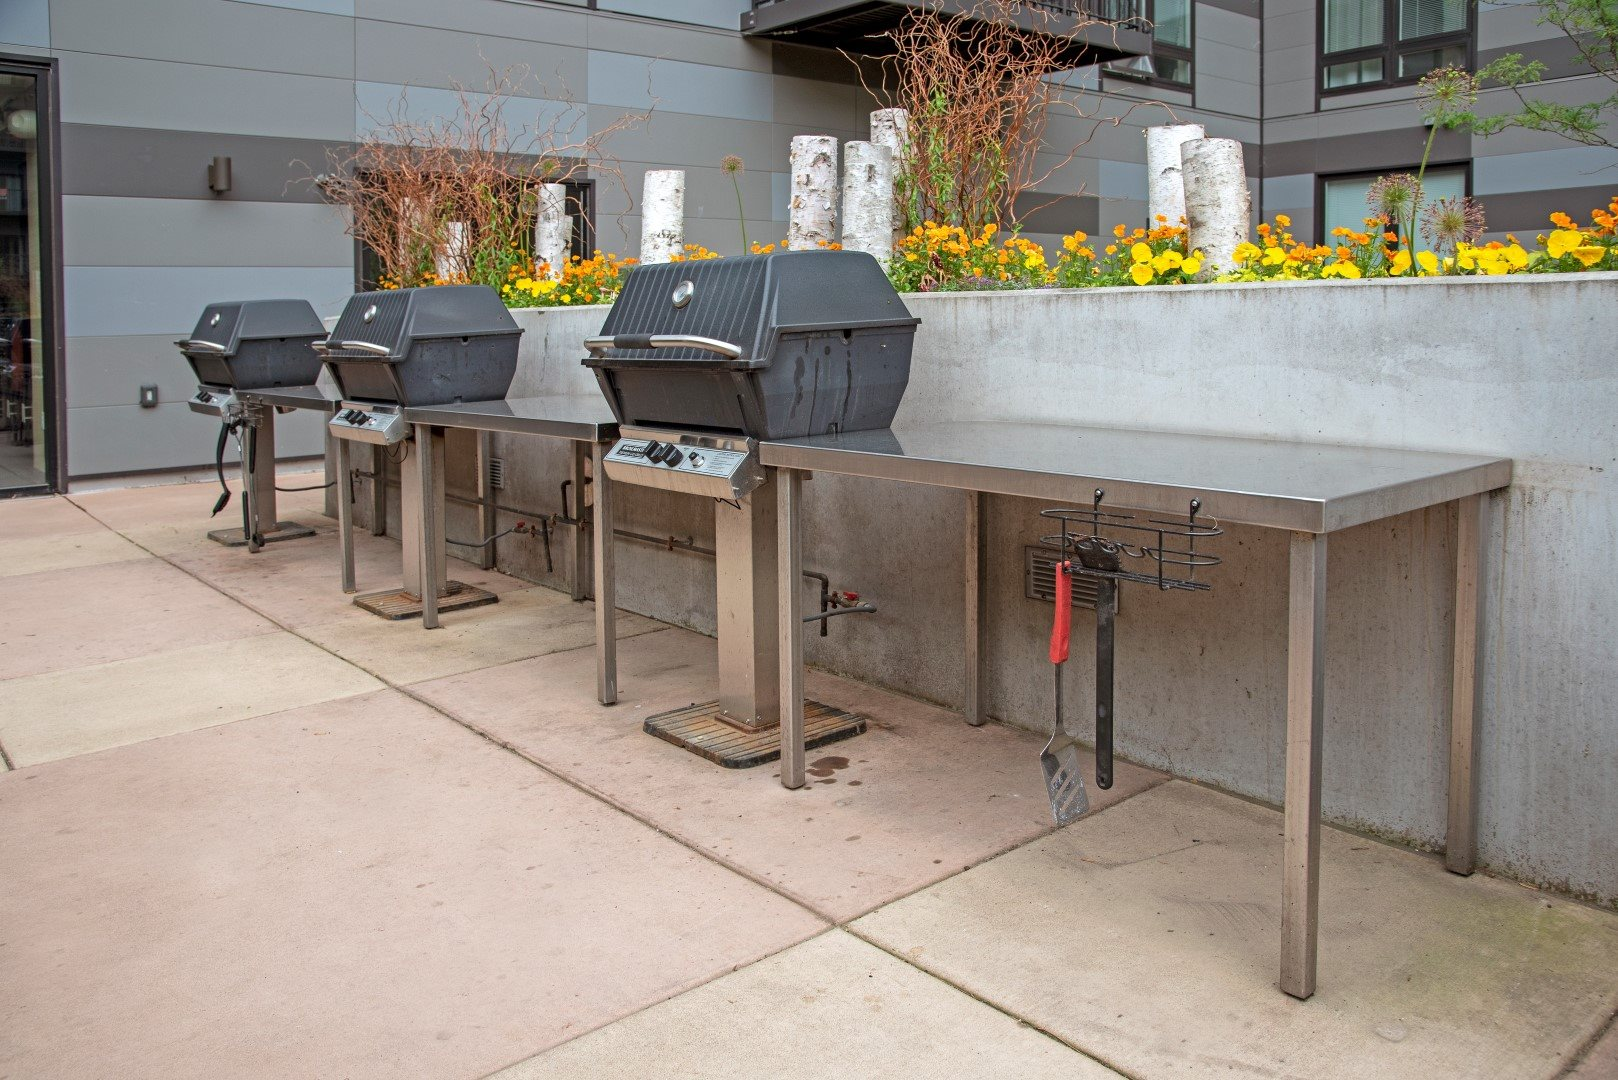 Grilling Stations at Third North, Minnesota, 55401